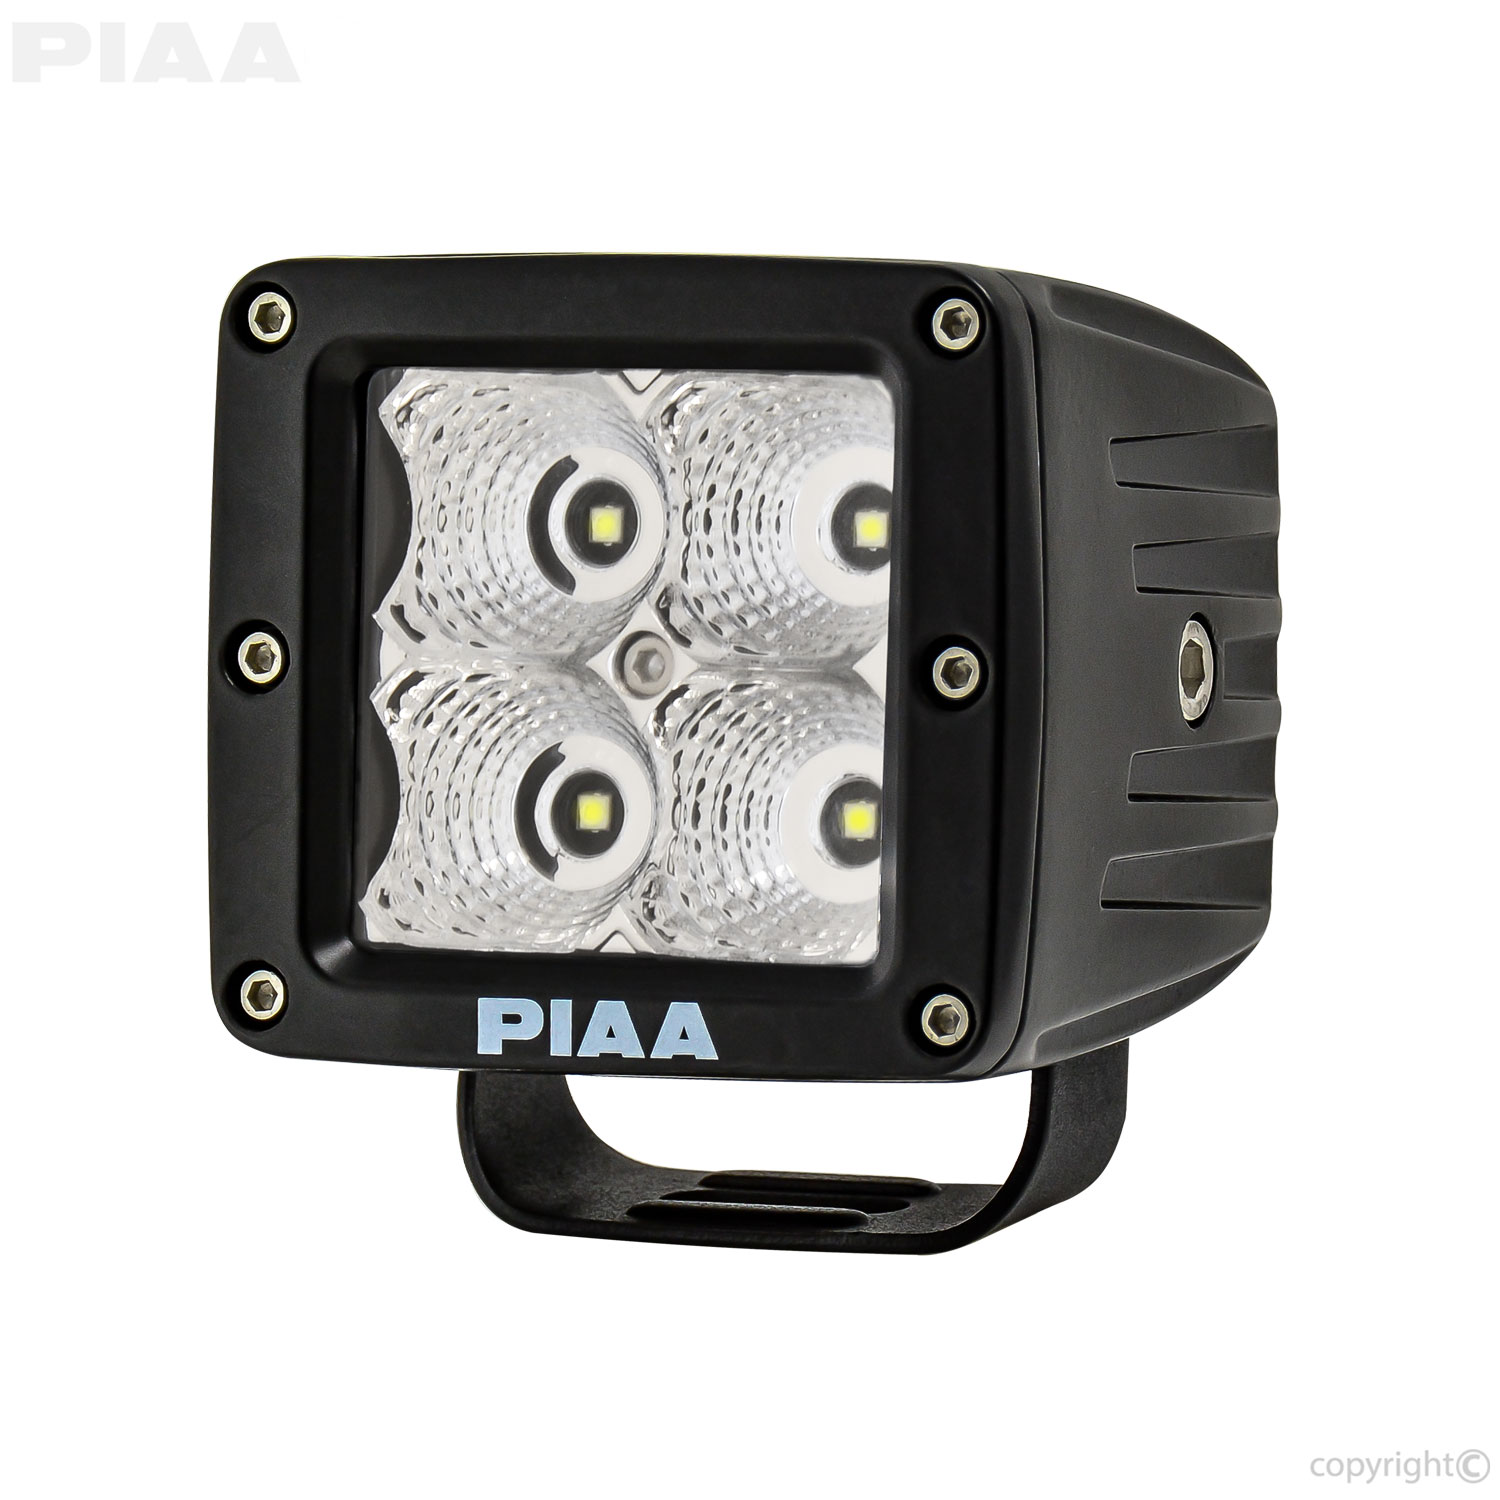 PIAA Quad Cube LED Flood Light